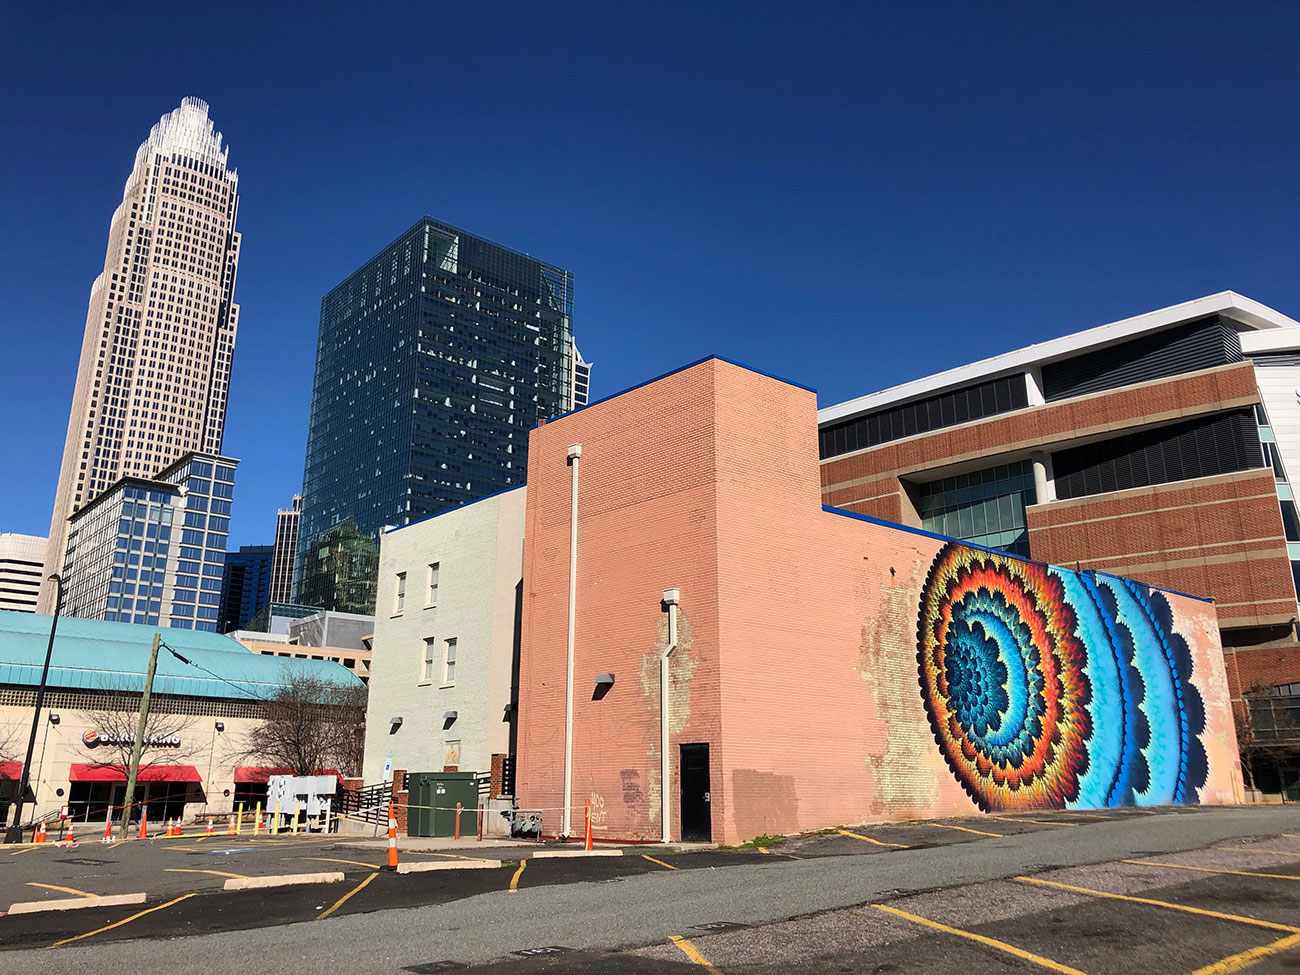 The definitive guide to 70+ Charlotte street murals, mapped